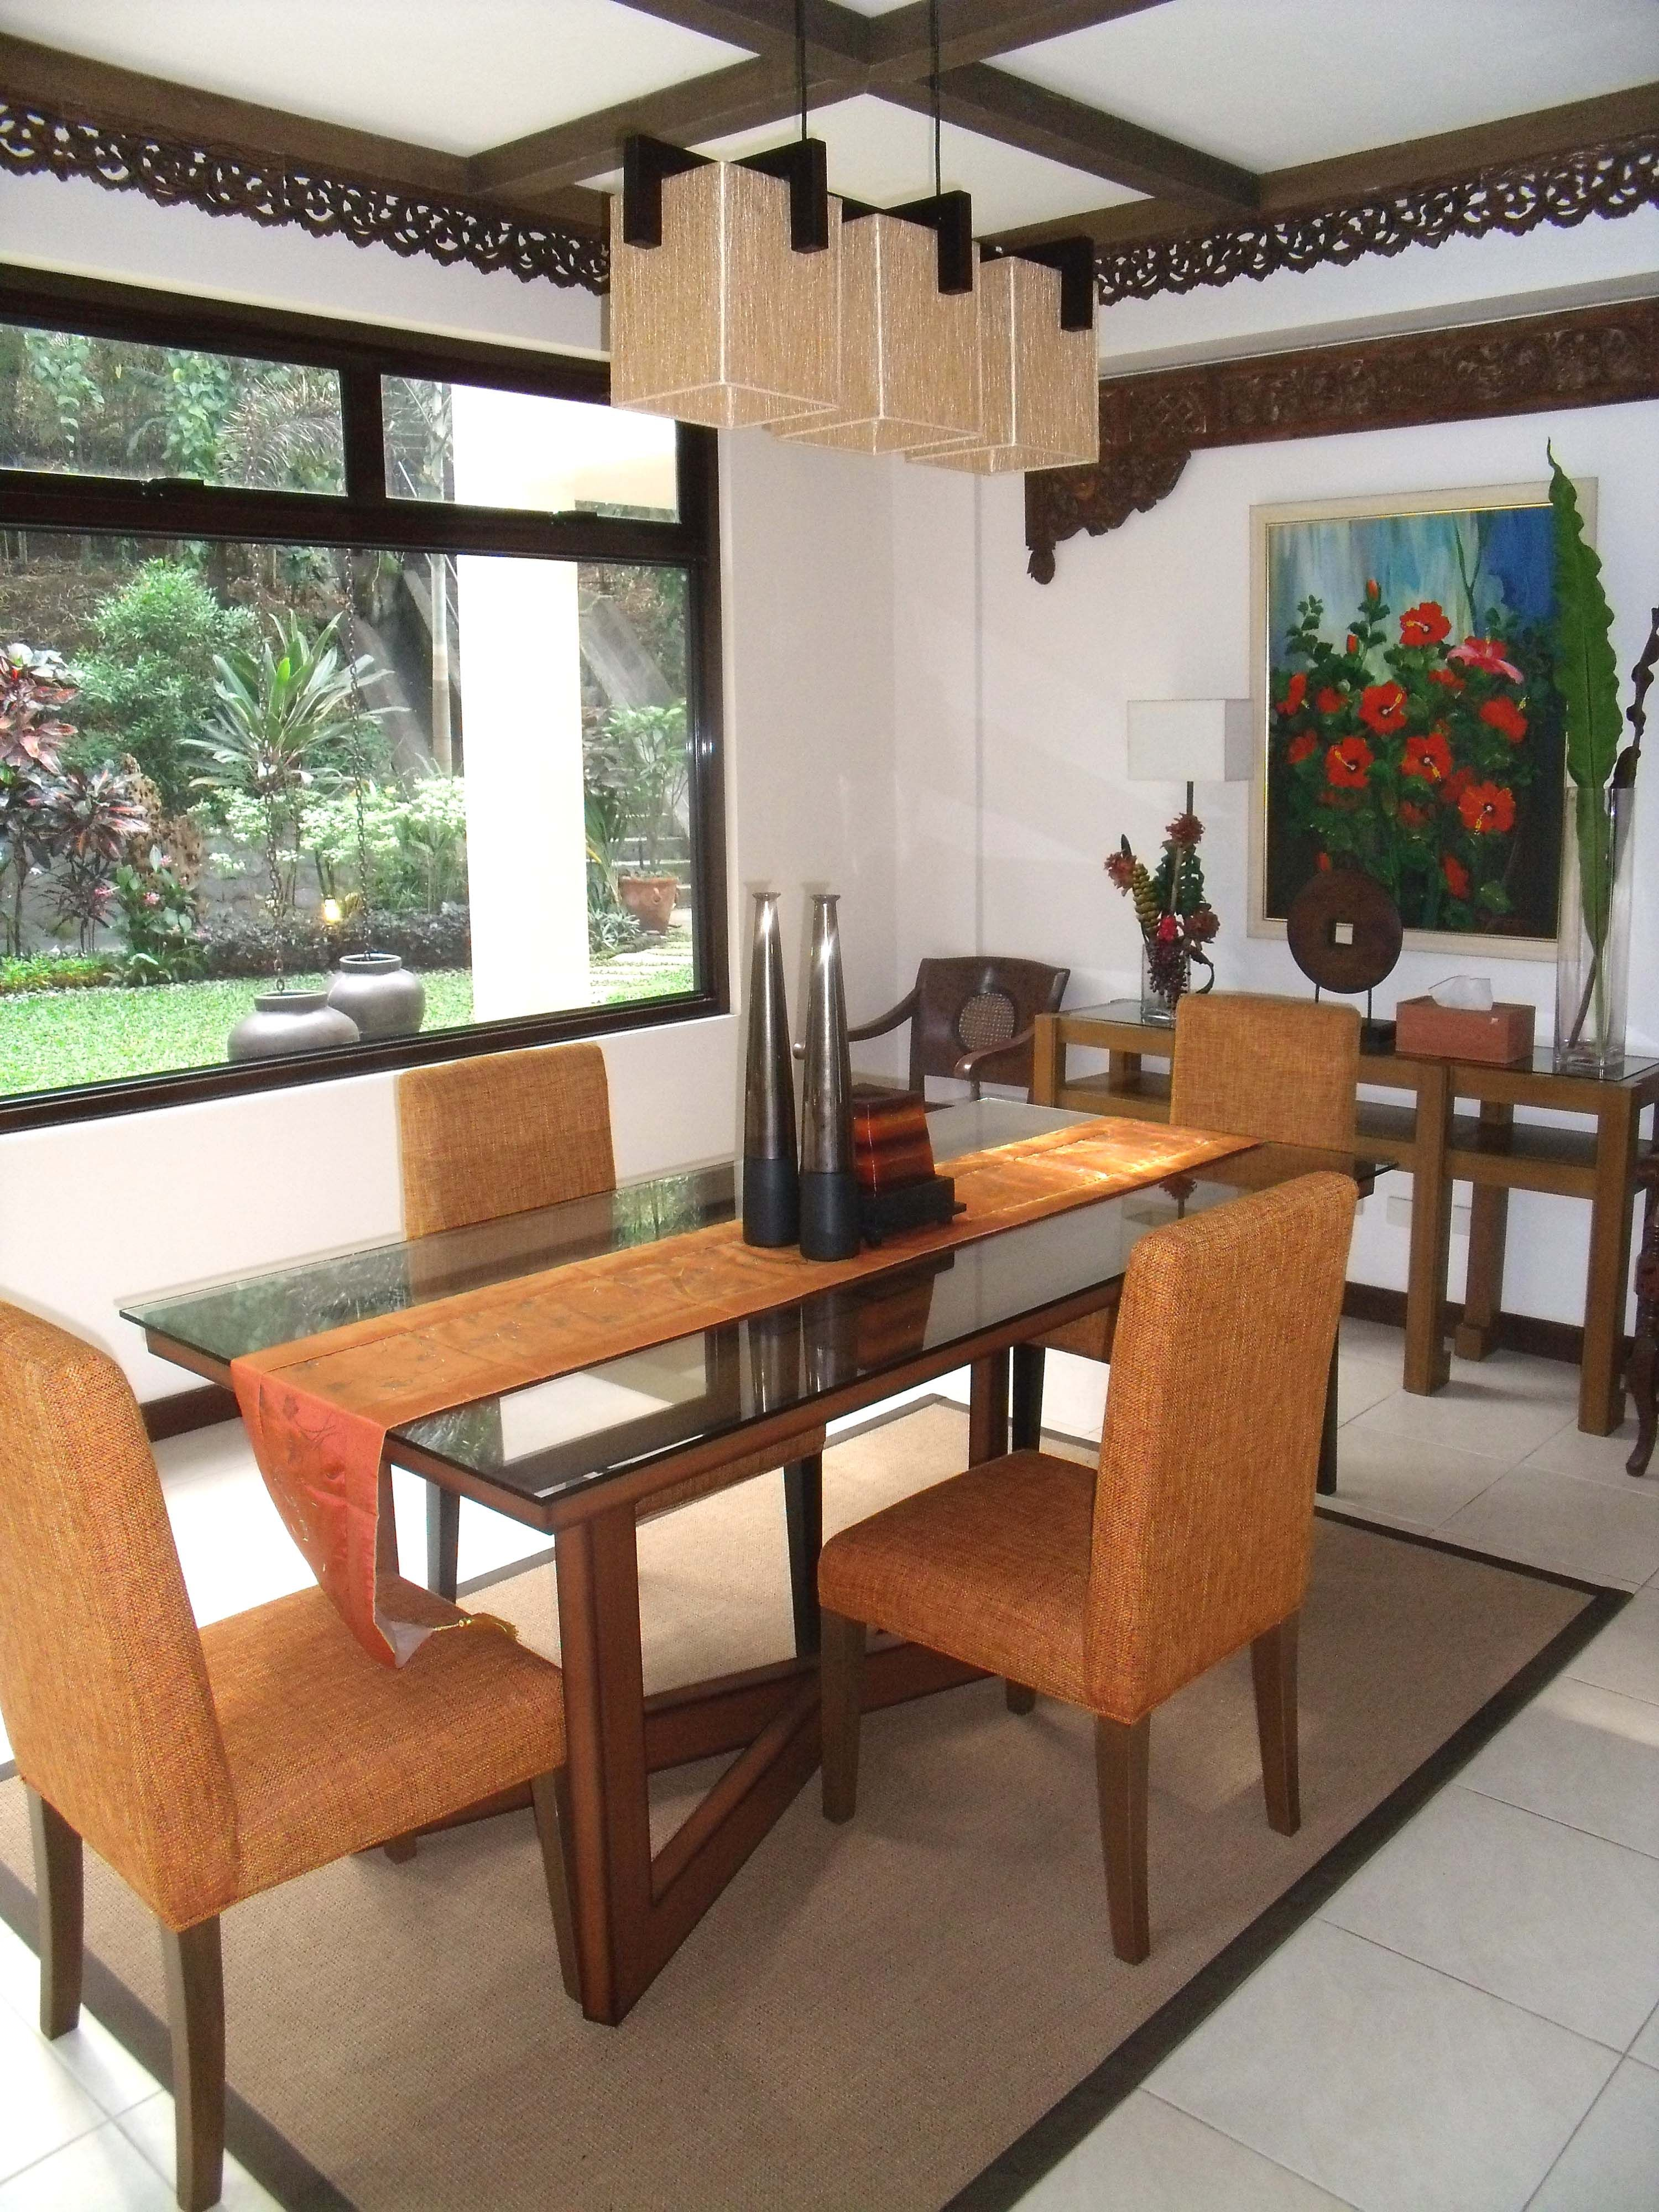 balinese inspired dining roomrvr interior design | inspired